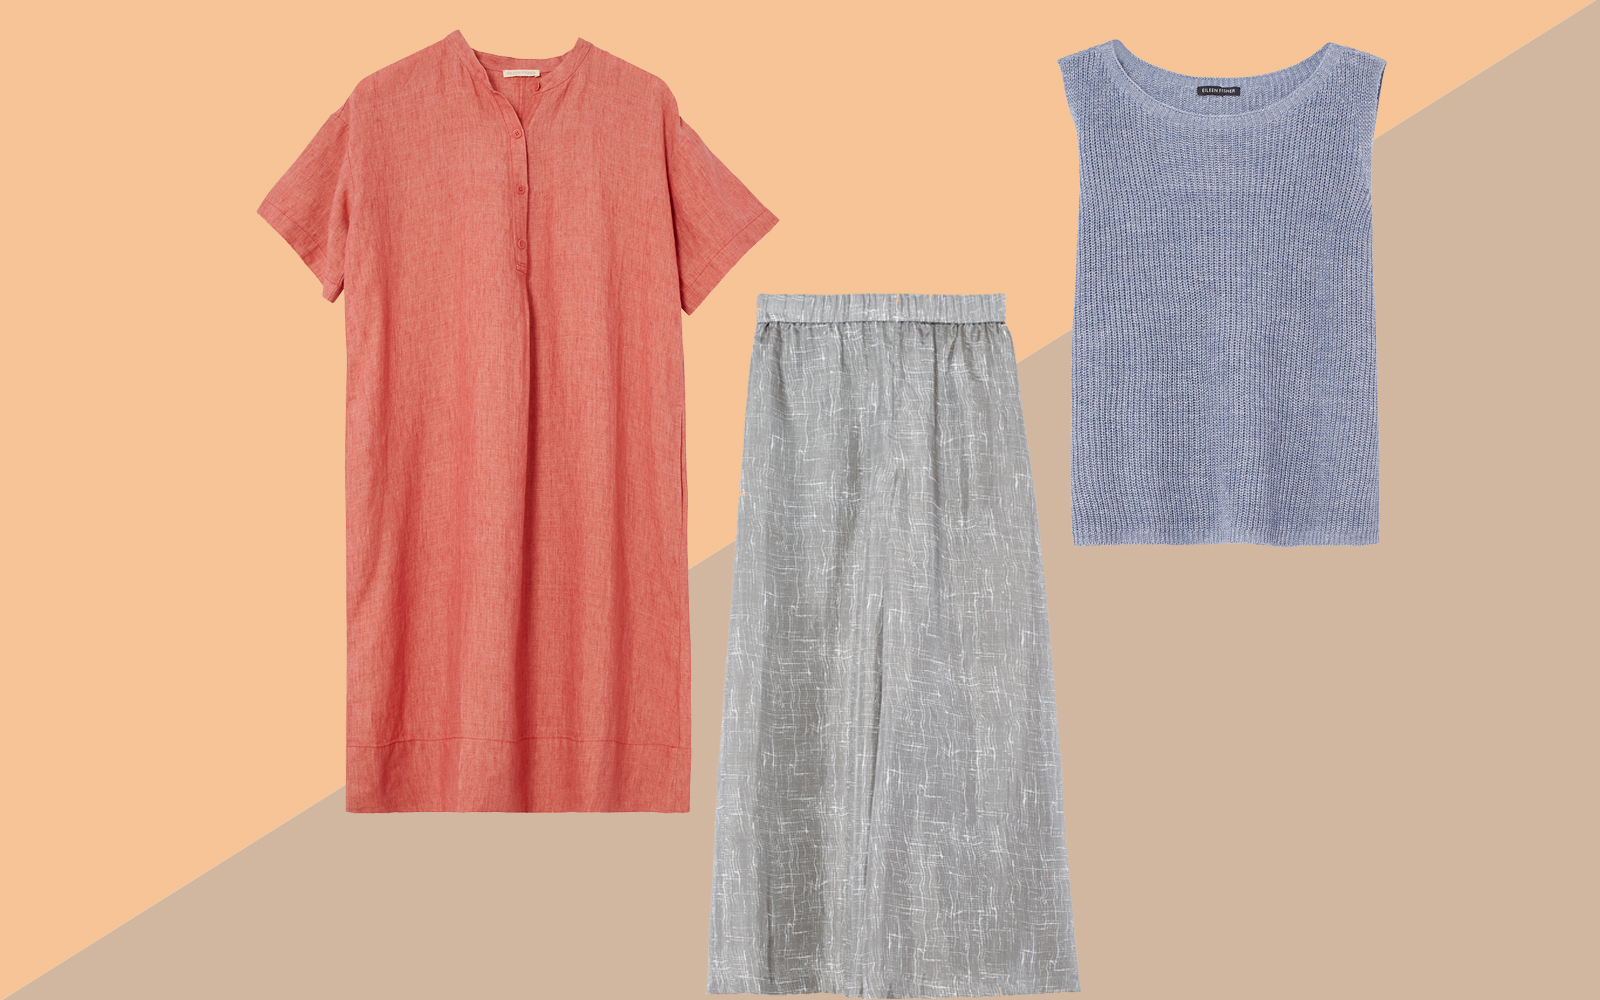 Eileen Fisher Collage Tout